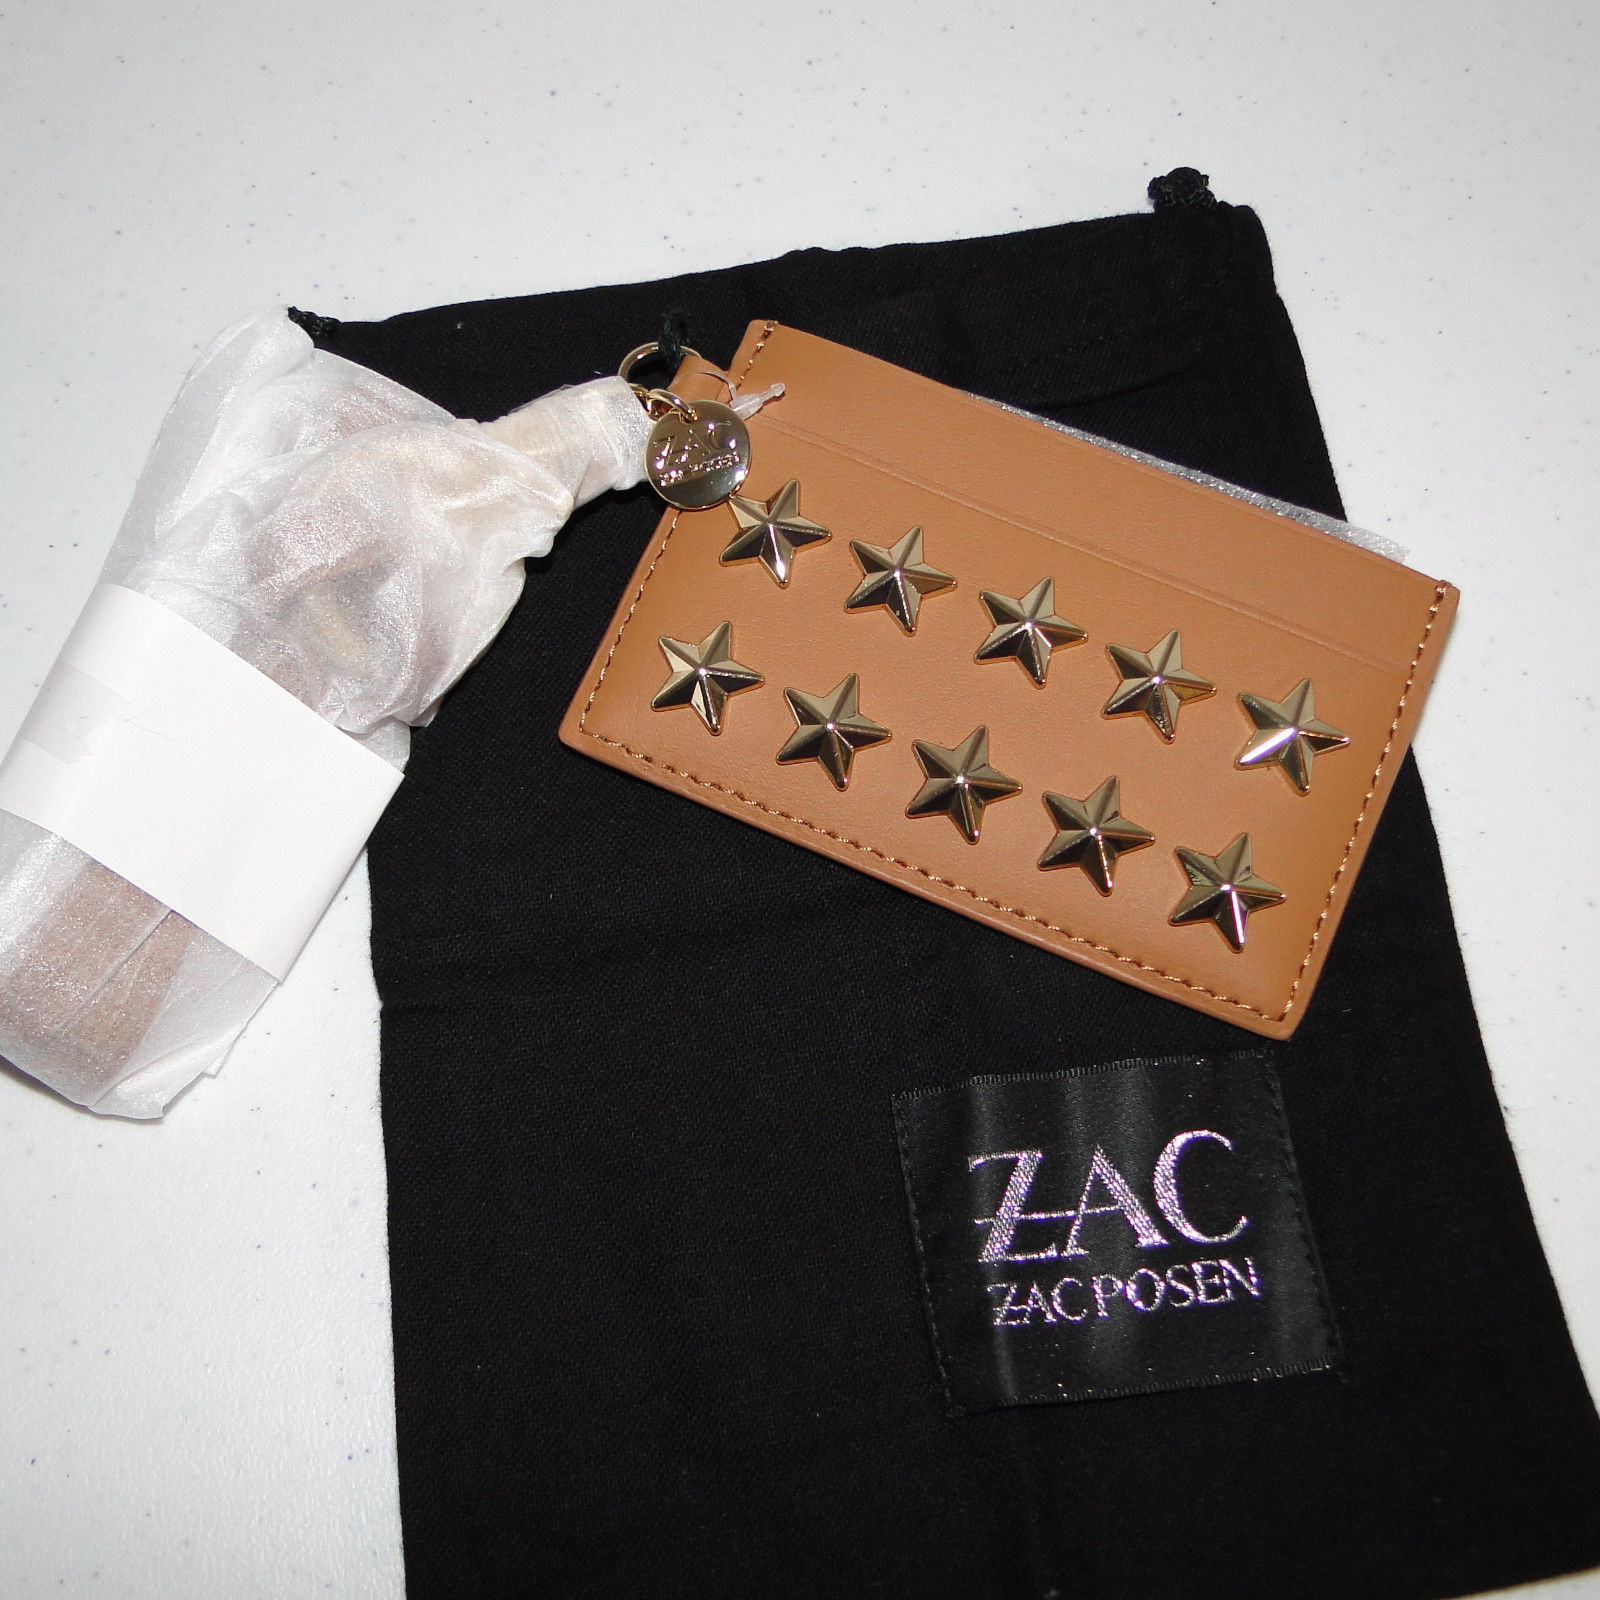 ZAC ZAC POSEN STAR STUDDED LANYARD CARD CASE